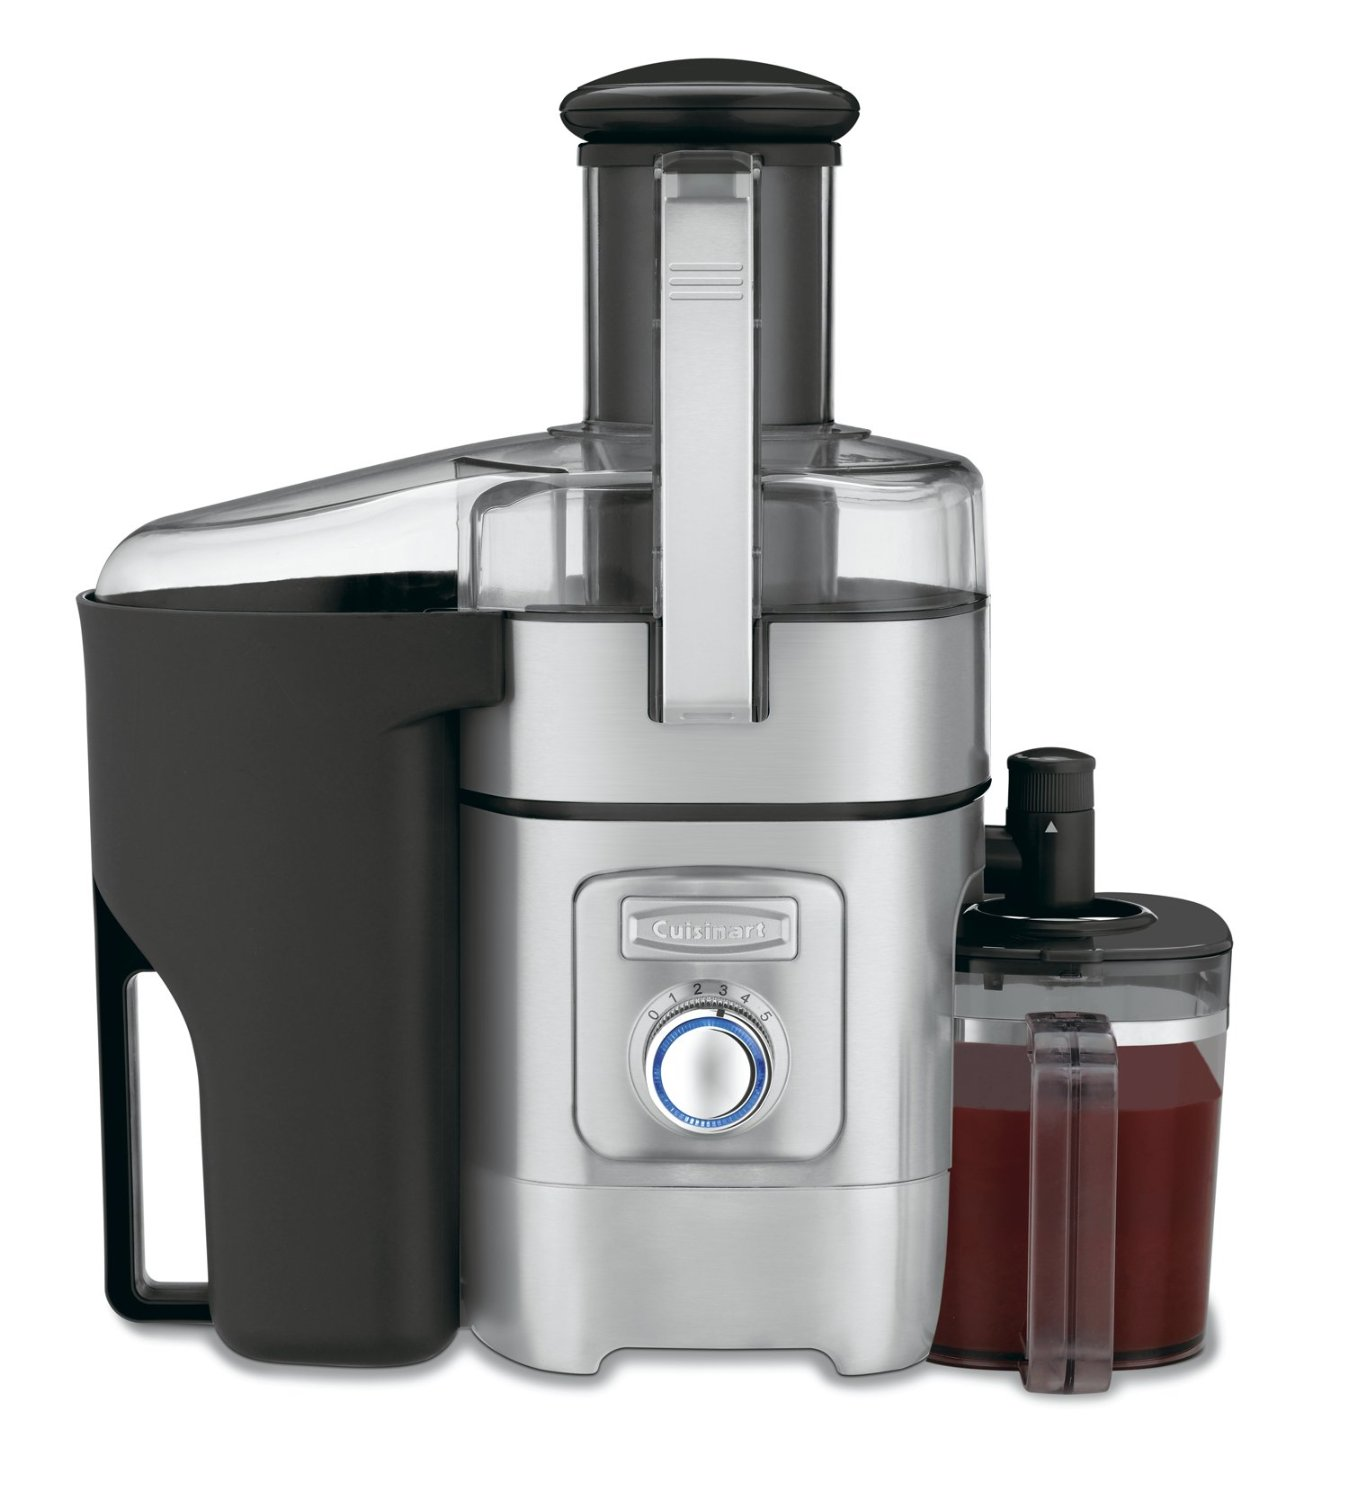 Best Vertical Masticating Juicer 2015 : 2018 s 10 Best Centrifugal & Masticating Juicer The Home Savant